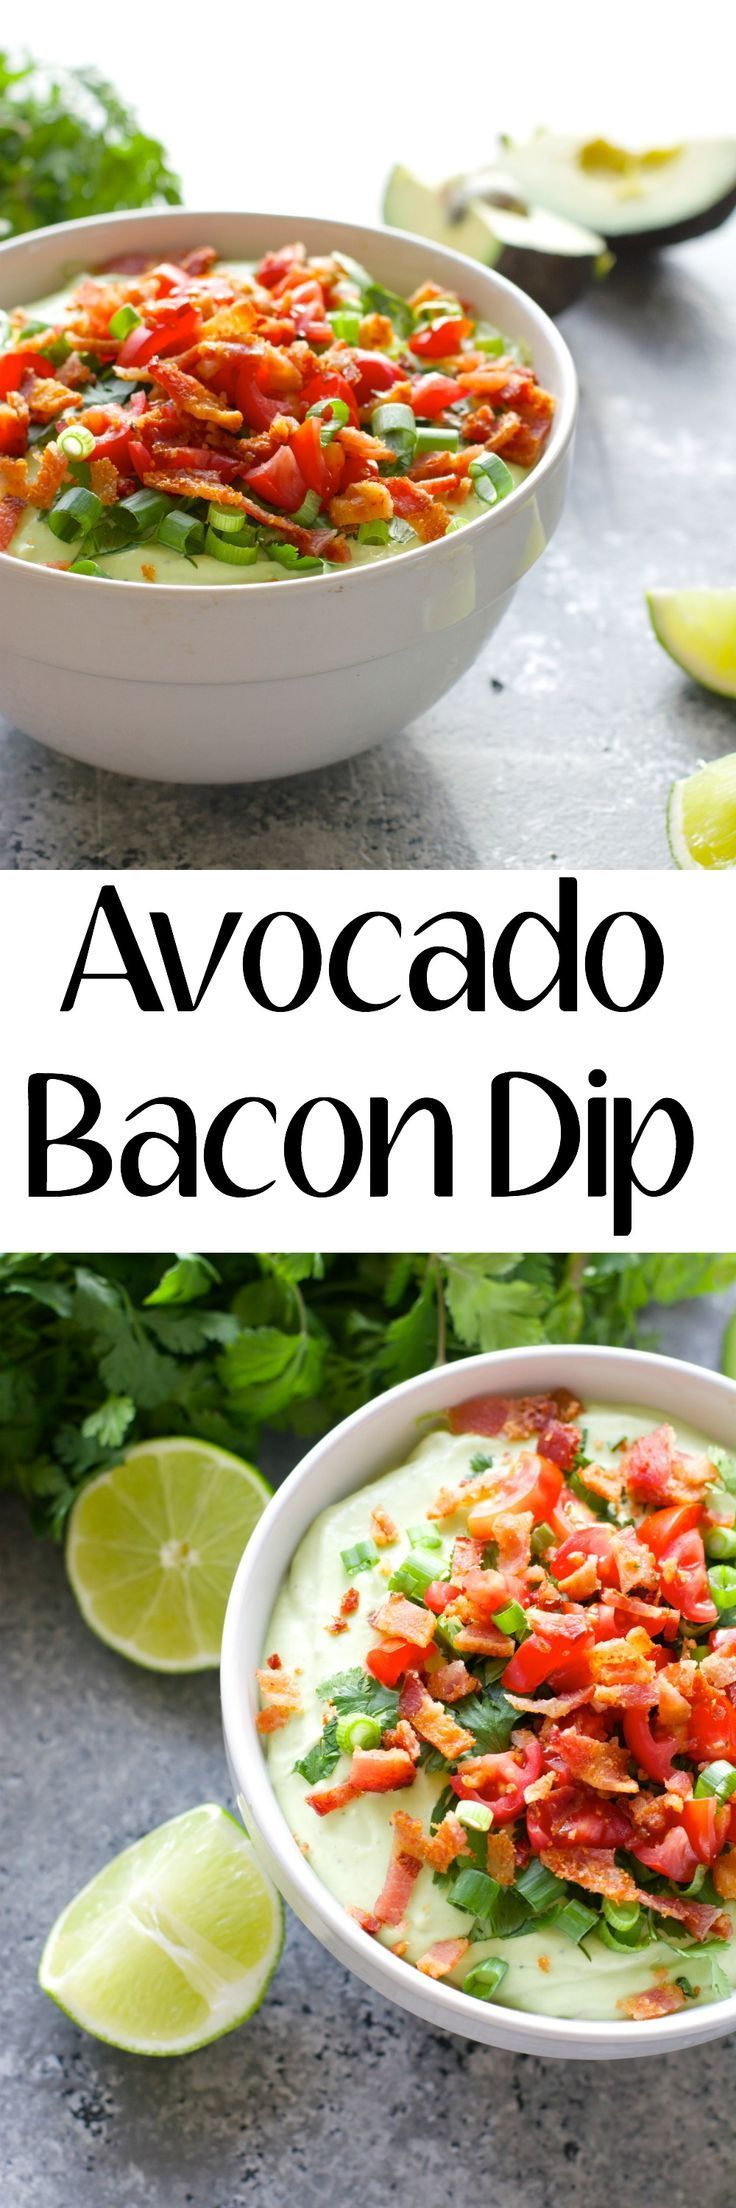 Creamy Avocado, light sour cream, spices and crisp bacon make for the perfect Summer appetizer!